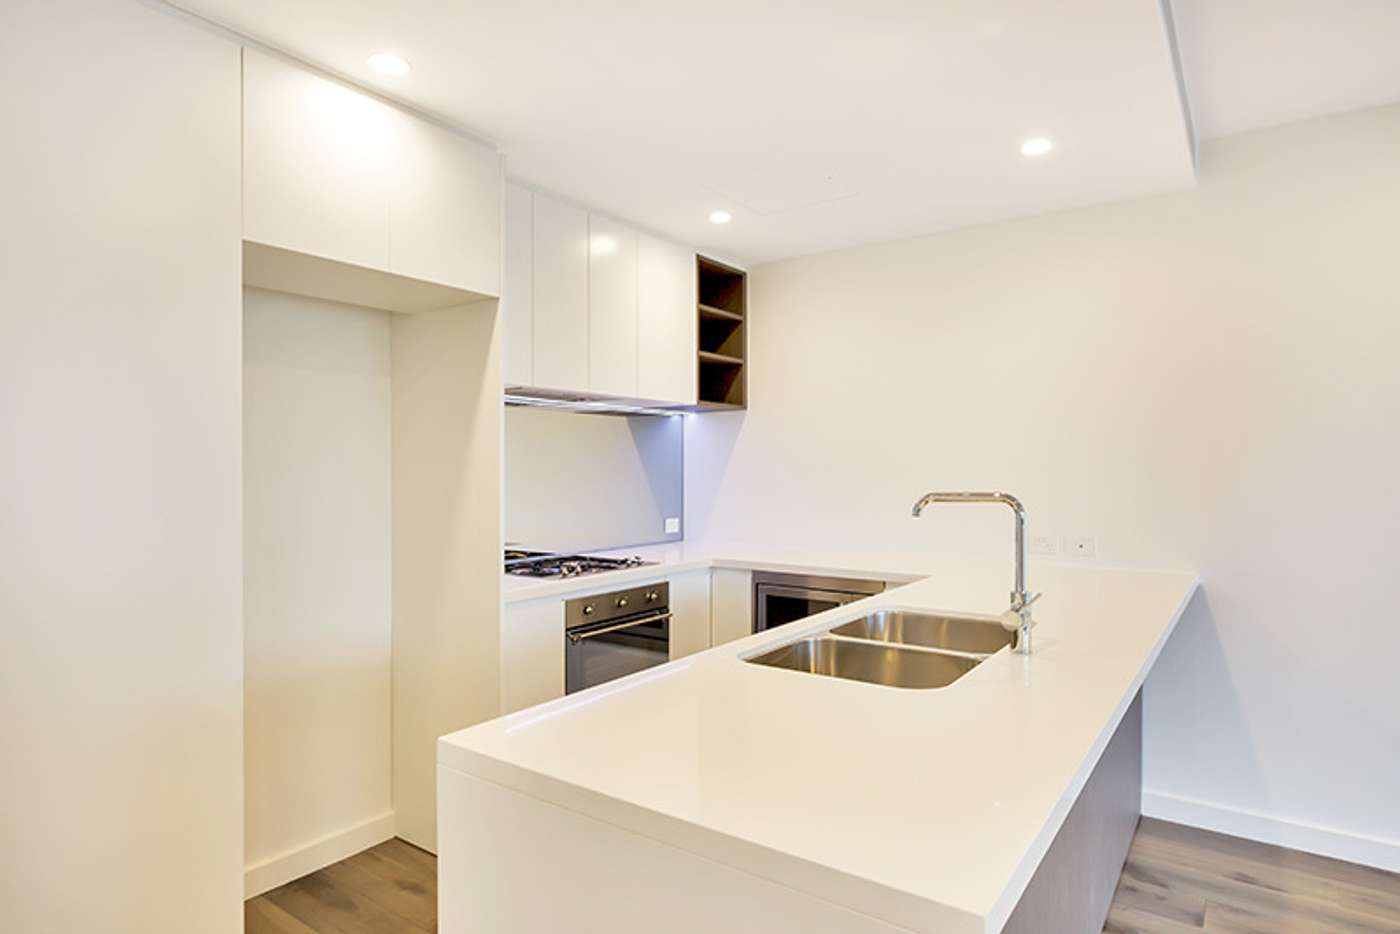 Main view of Homely apartment listing, 202/201 Darling Street, Balmain NSW 2041